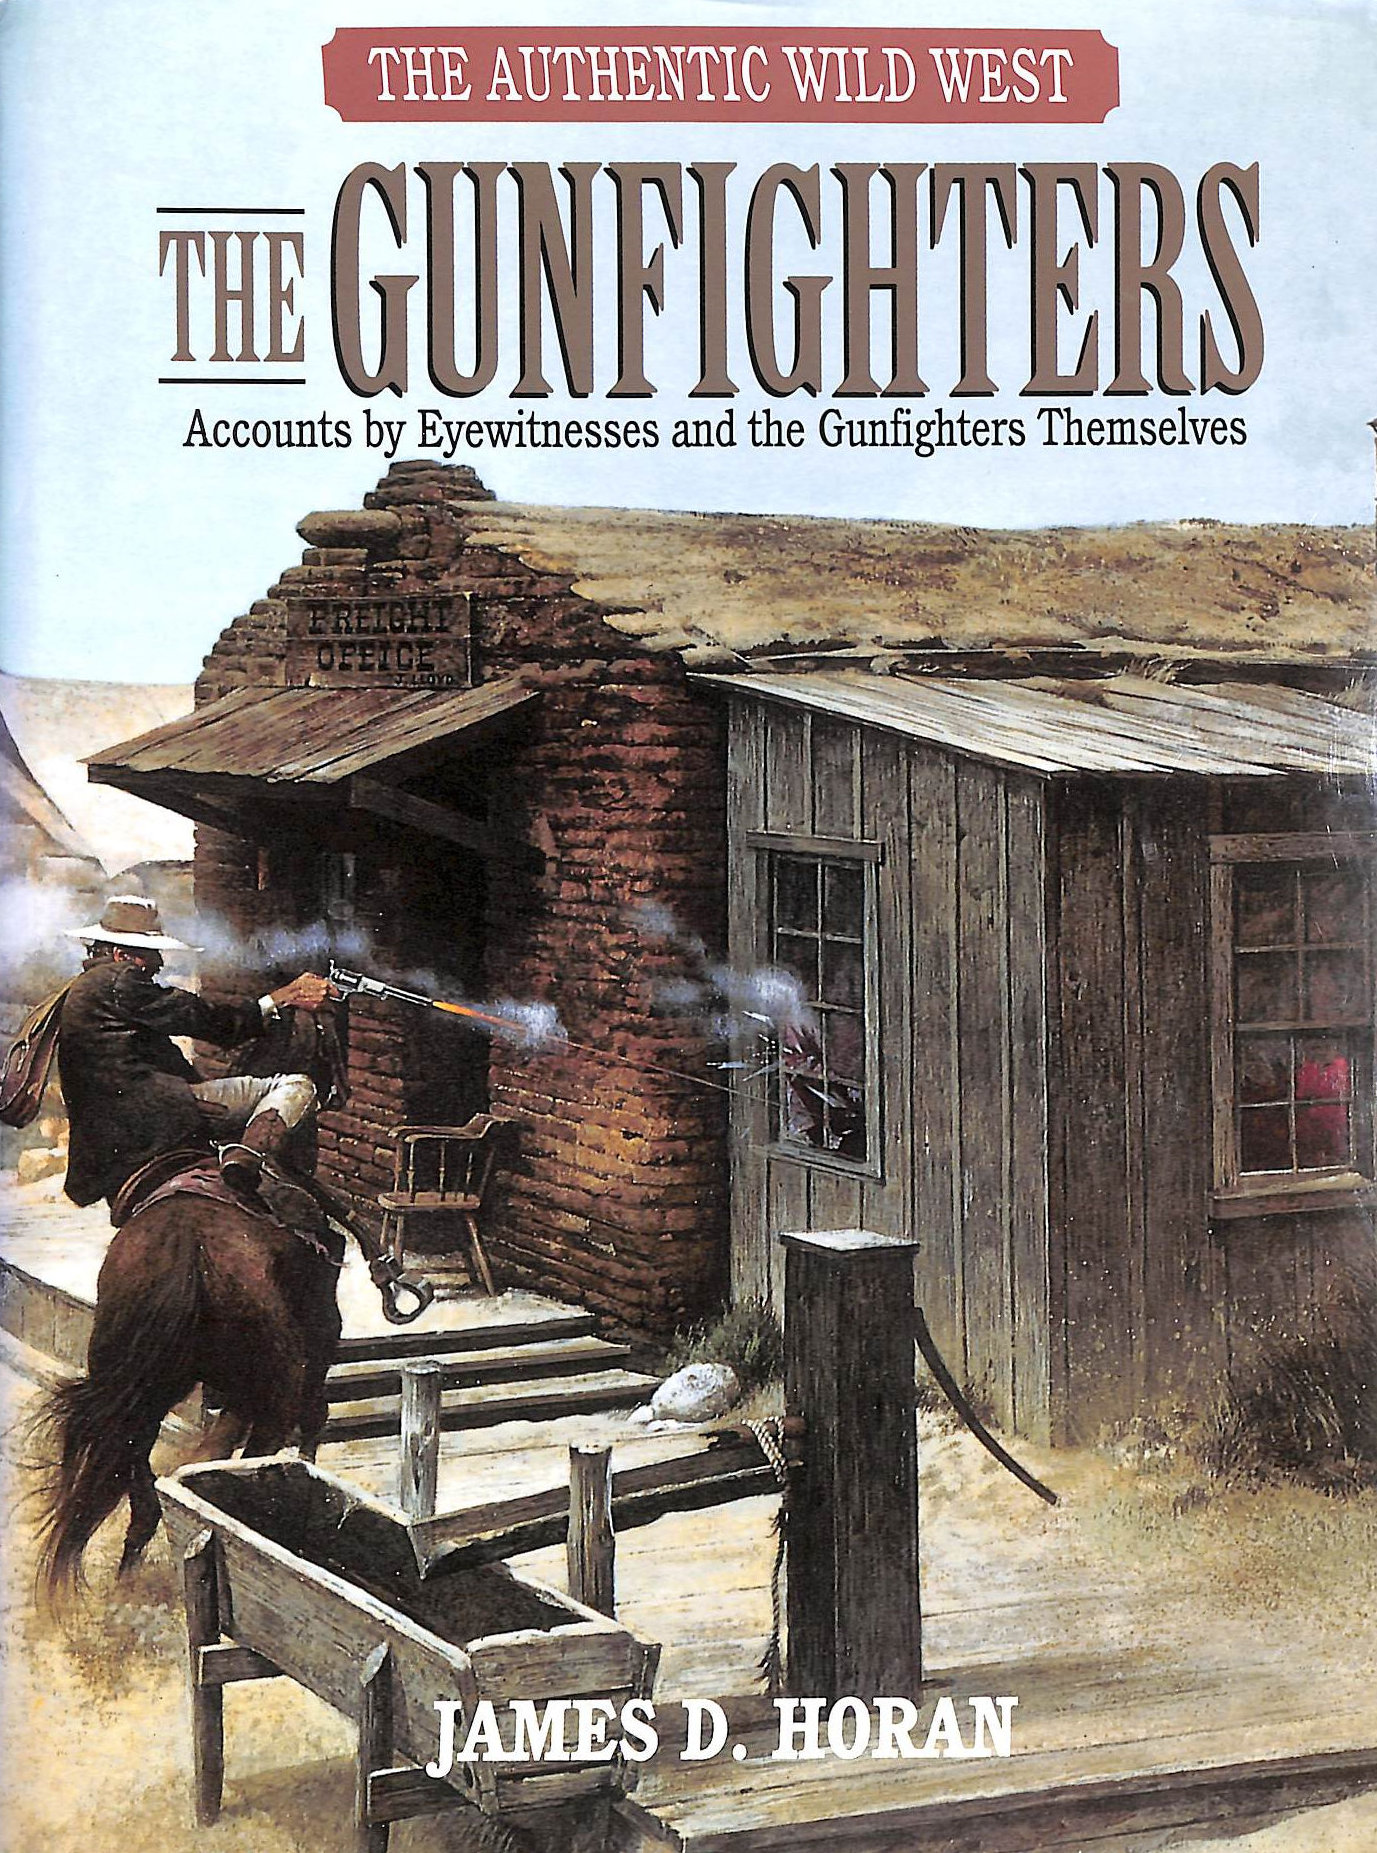 HORAN, JAMES D. - The Gunfighters: The Authentic Wild West